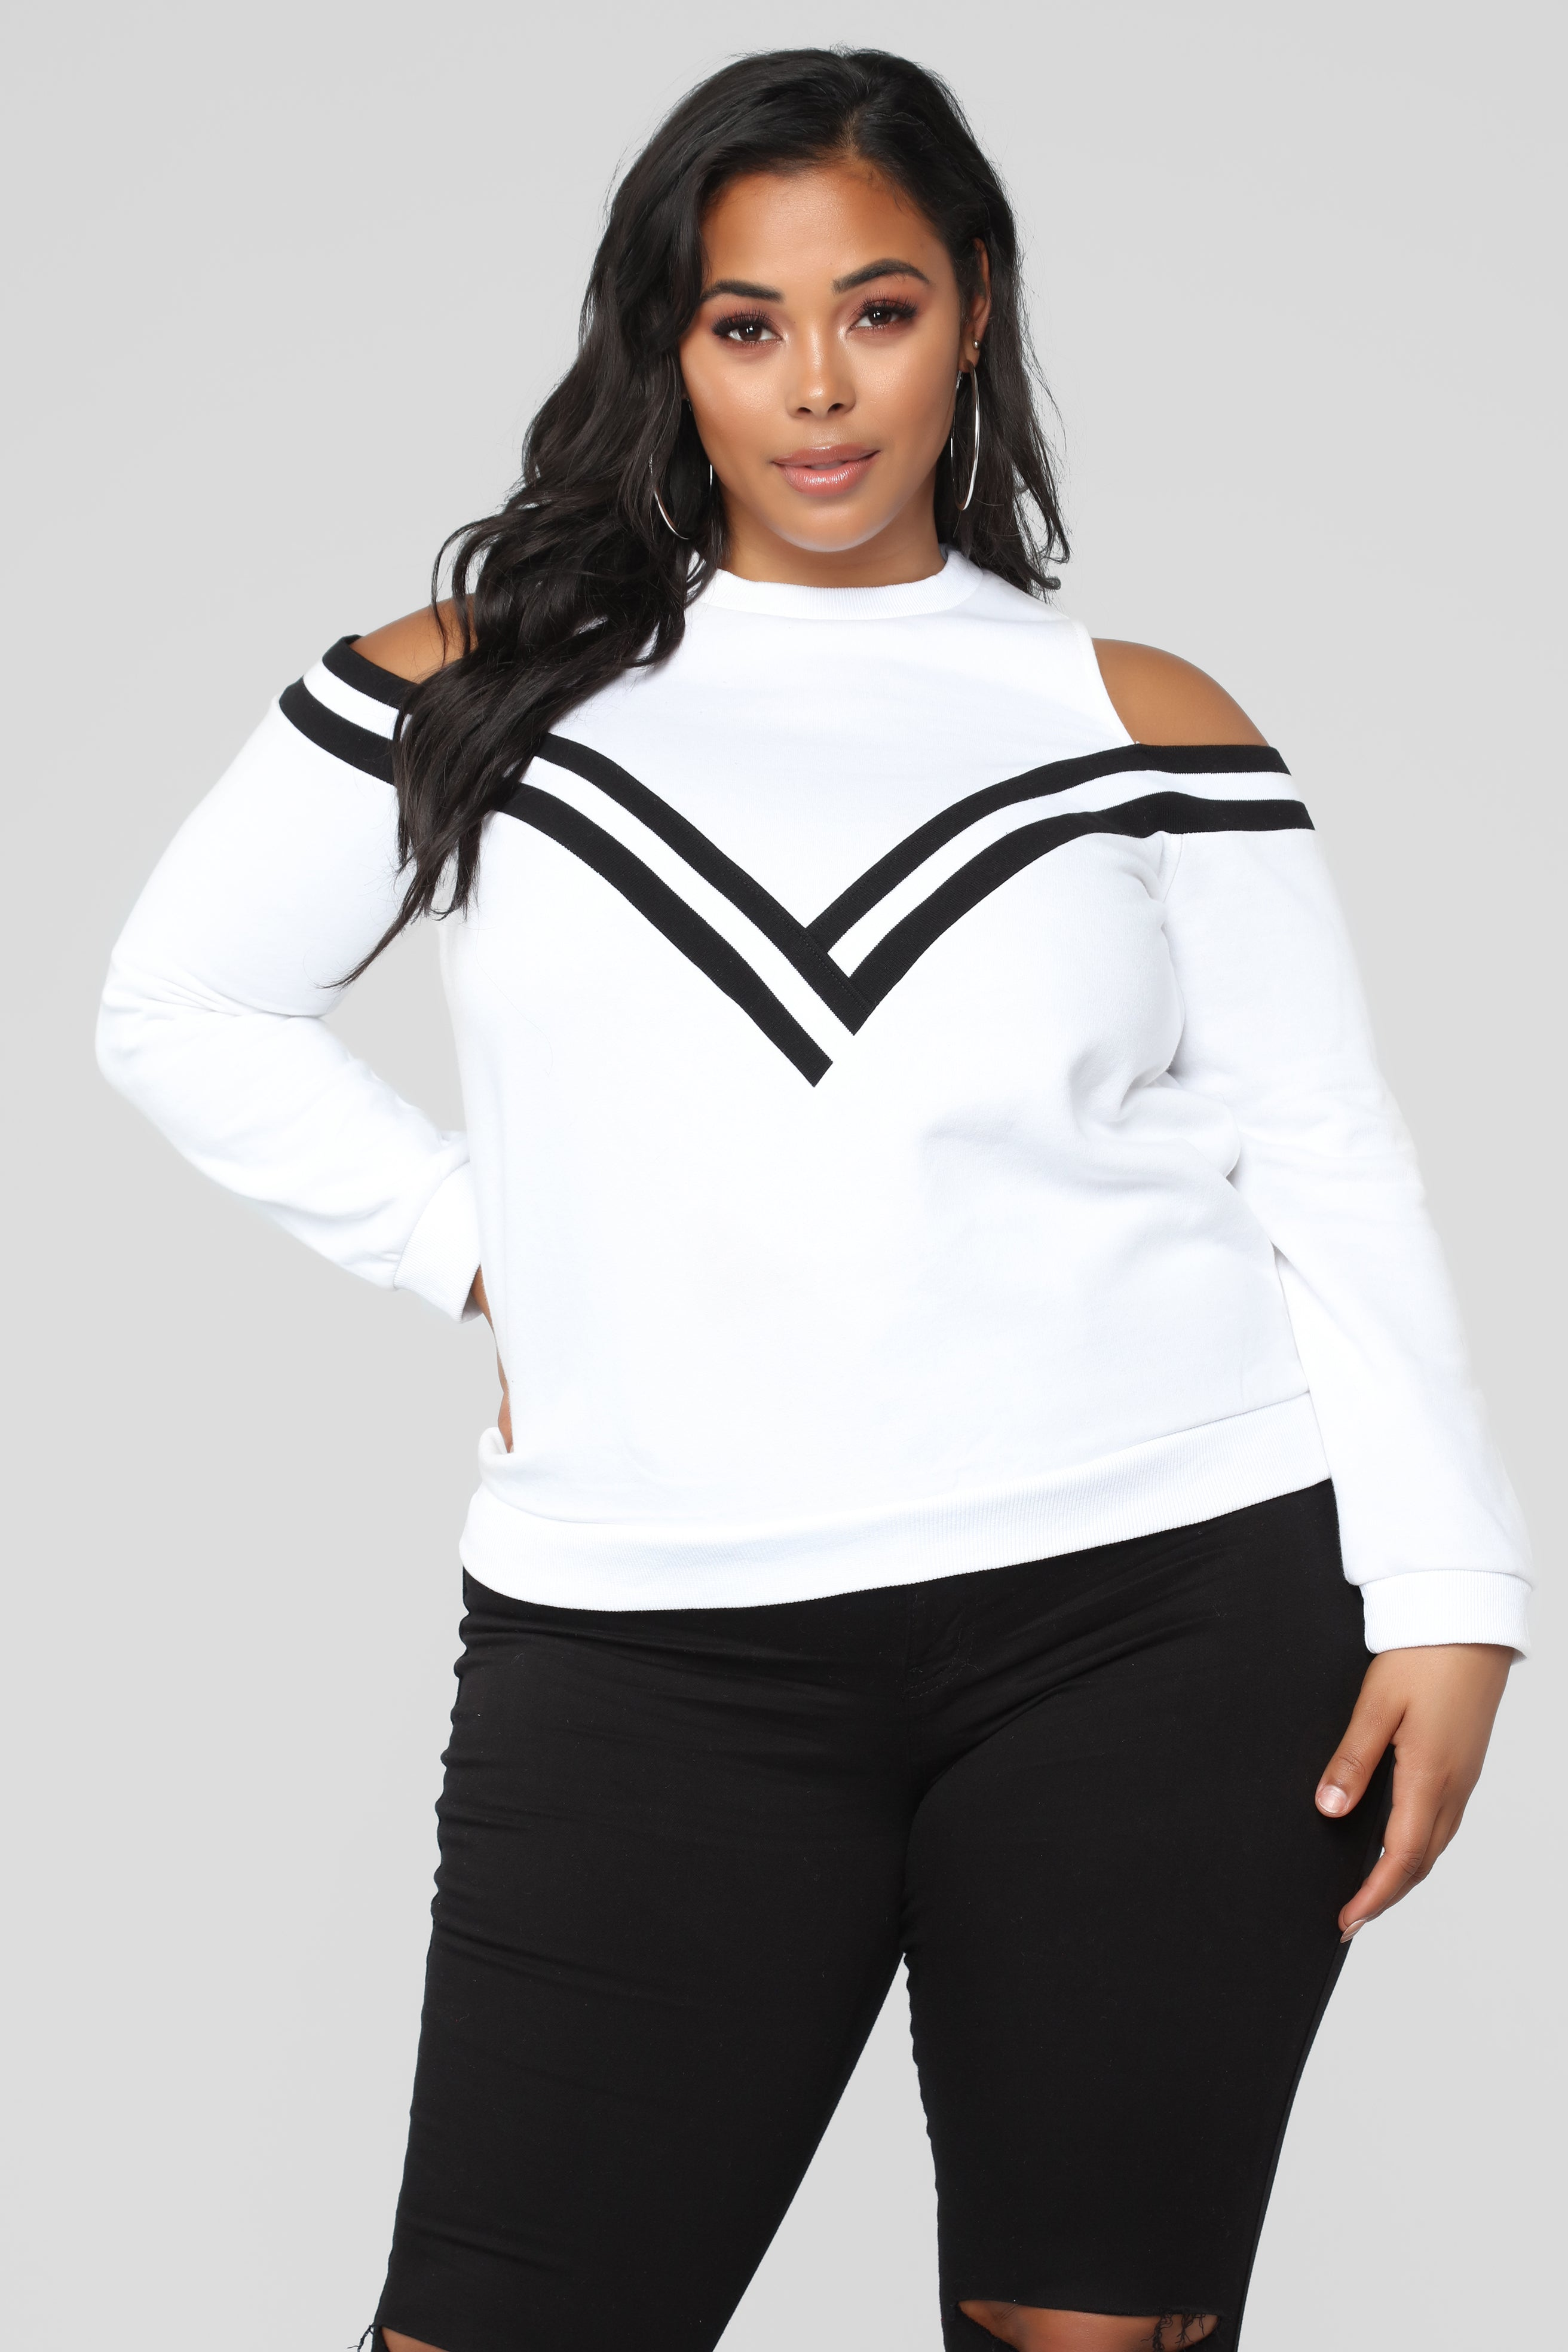 4121a2c3267a2 Plus Sale. 1461 results. All Or Nothing Sweater - Off White